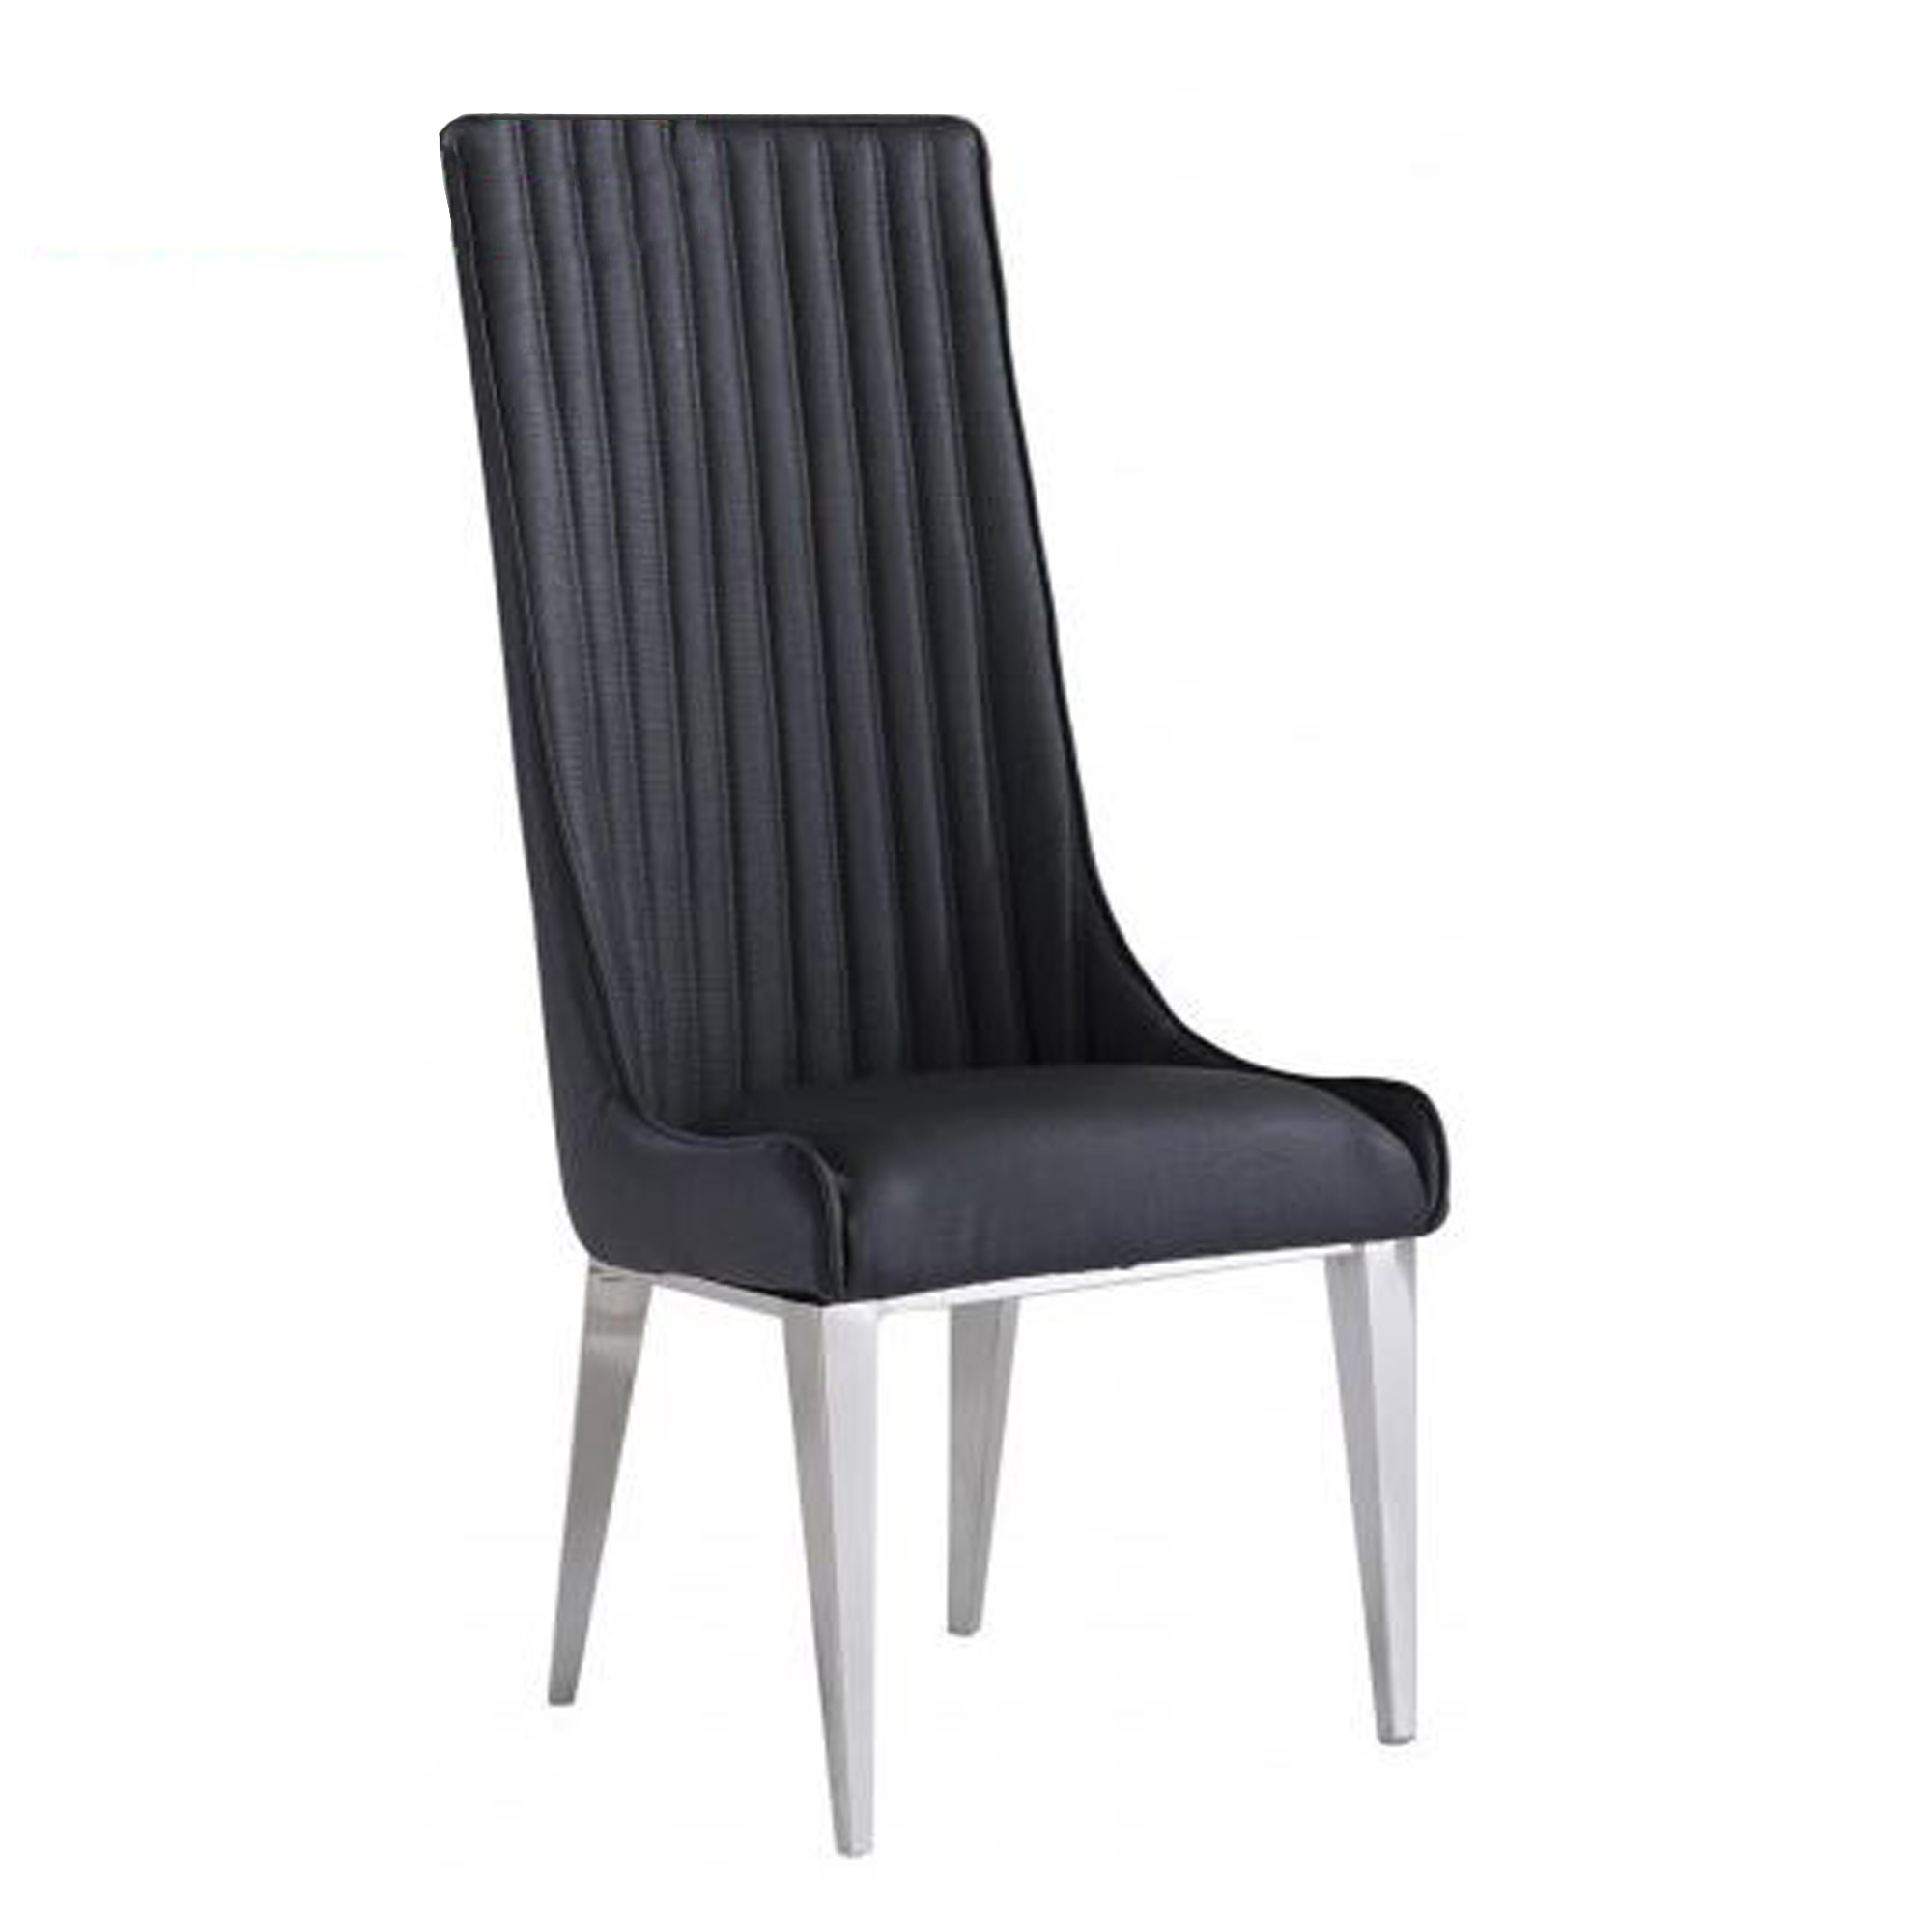 Dark Grey And Chrome Dining Chair Set Of 2 Dining Chairs